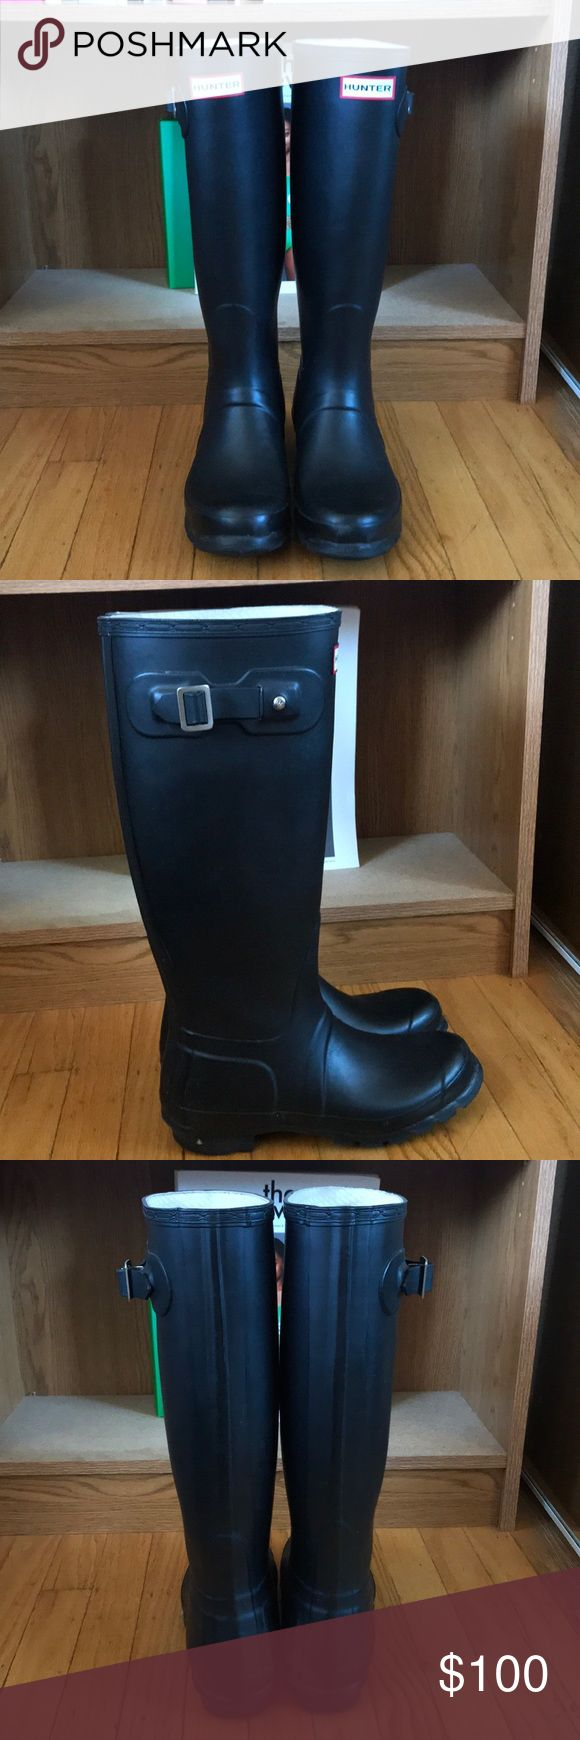 Hunter rain boots. Tall Hunter rain boots. Classic black. Not for wide calves. Women's 7 but bc they run large, can fit US 7-8. Men's US 6.  Small signs of wear throughout the boots but still in great condition. Hunter Boots Shoes Winter & Rain Boots